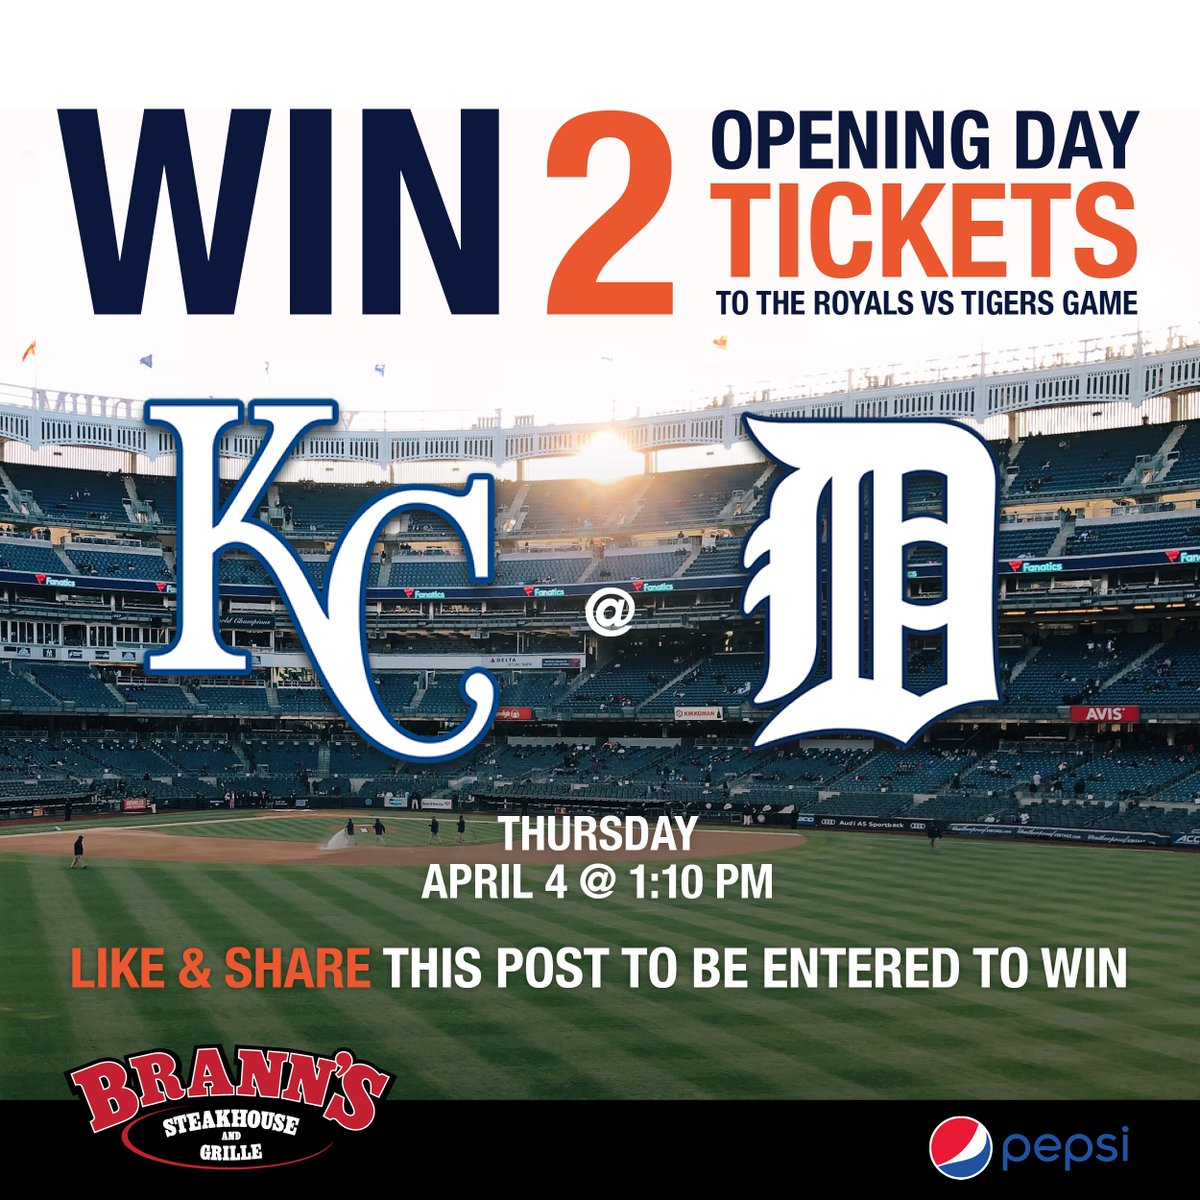 We're stoked to giveaway 2 tickets to the Tigers ⚾️ home opener on April 4, courtesy of @pepsi. Please like, retweet and follow us for a chance to win! A winner will be selected on Monday, March 18. Thanks and good luck! @Hugeshow @TheTicketMI #FridayFeeling #OpeningDay